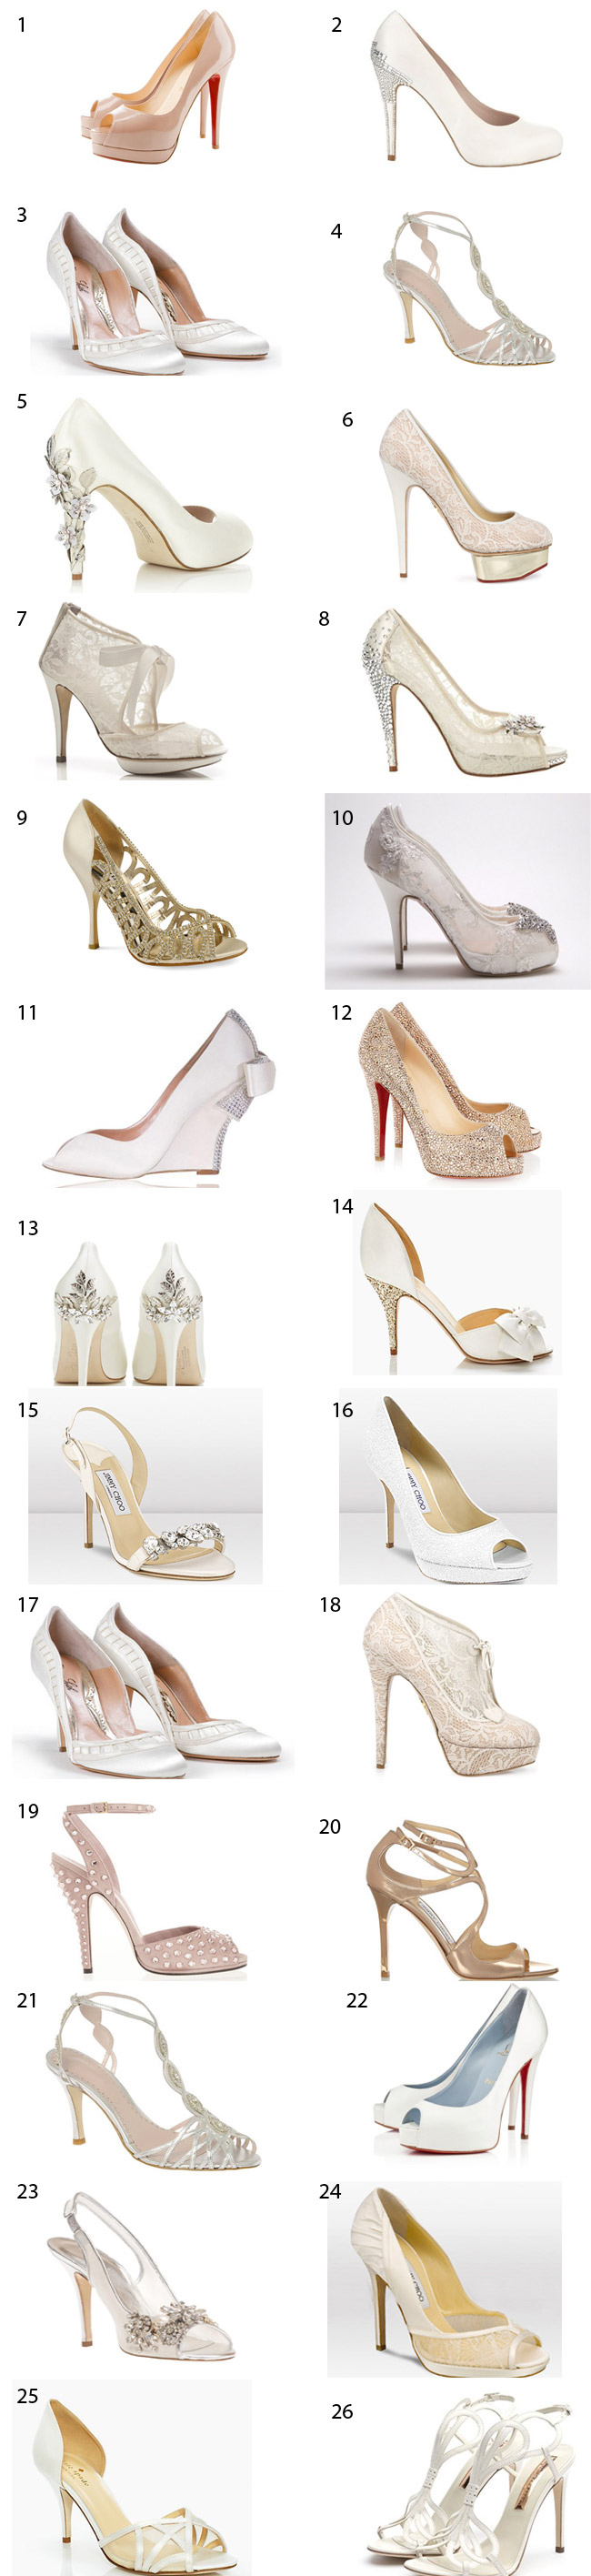 Wedding Shoes Bridal Shoes On The Blog Where To Buy Bridal Shoes Www Whiteavenue Co Uk Bridal Shoes Wedding Shoes Luxury Wedding Planner